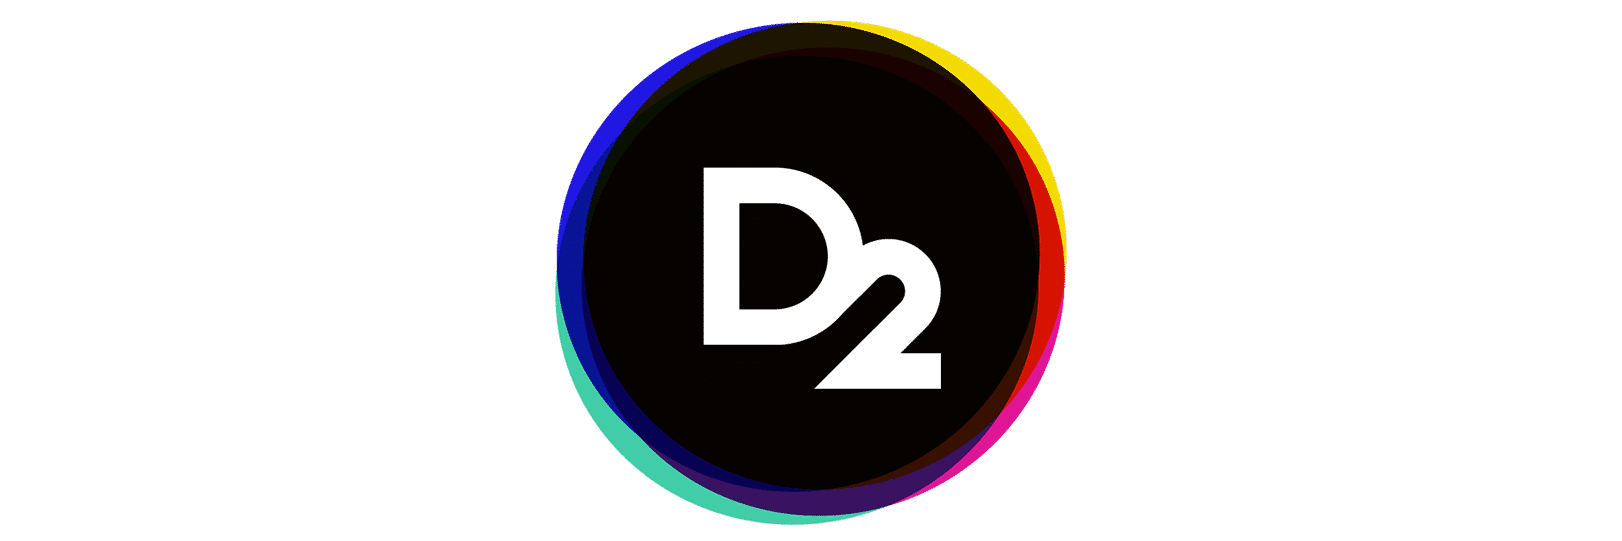 D2-digital-logo